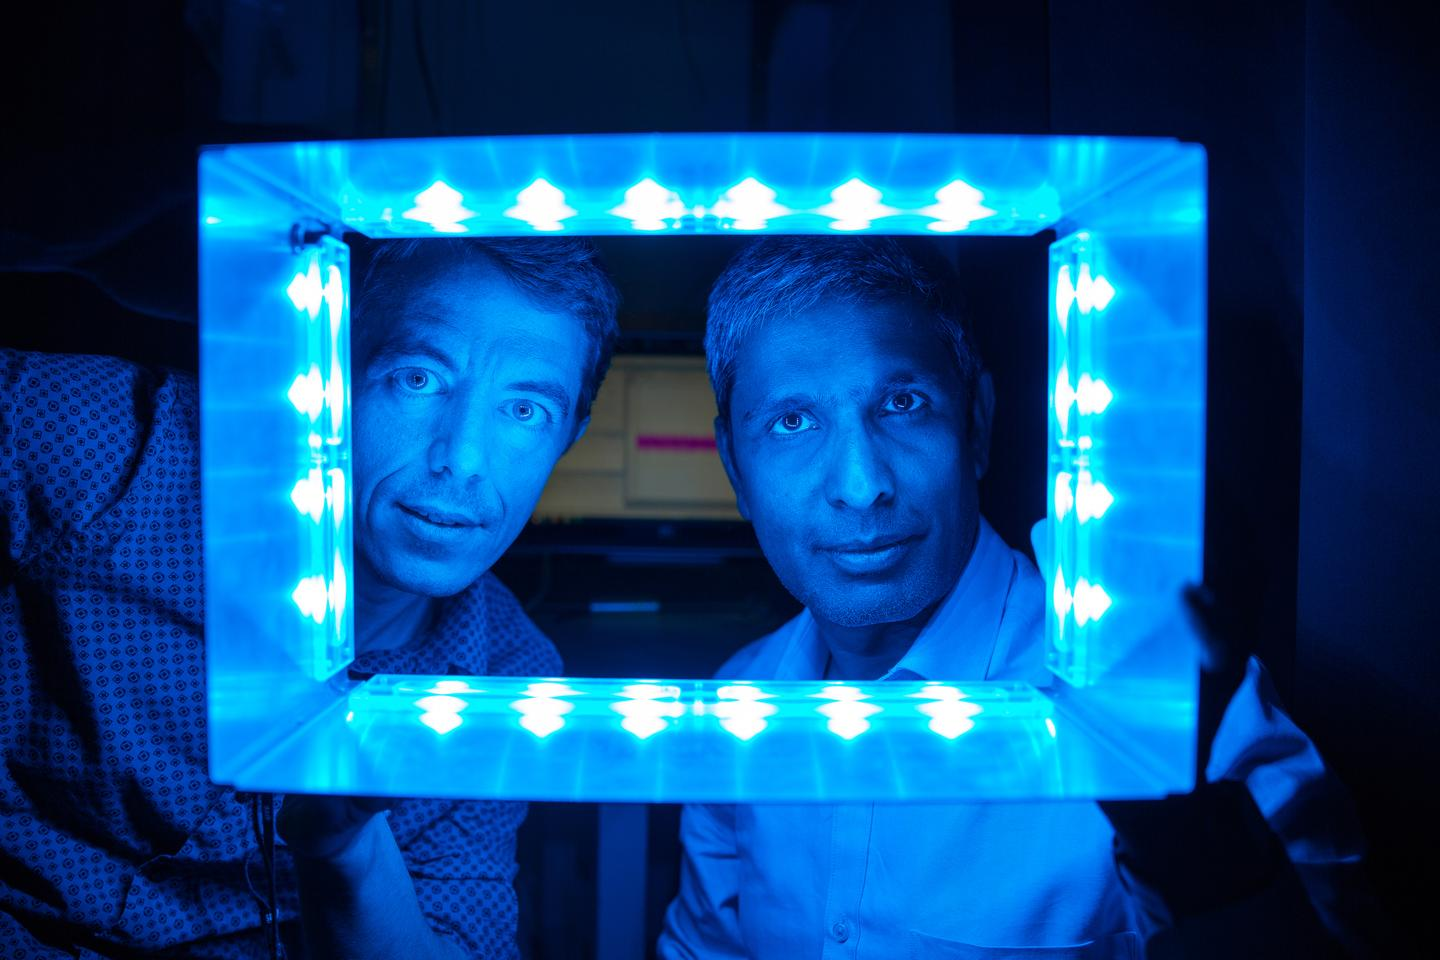 Salk researchers Ludovic Mure and Satchidananda Panda hope to find new treatments that can mitigate the disruptions artificial light from our screens is causing to our circadian rhythms